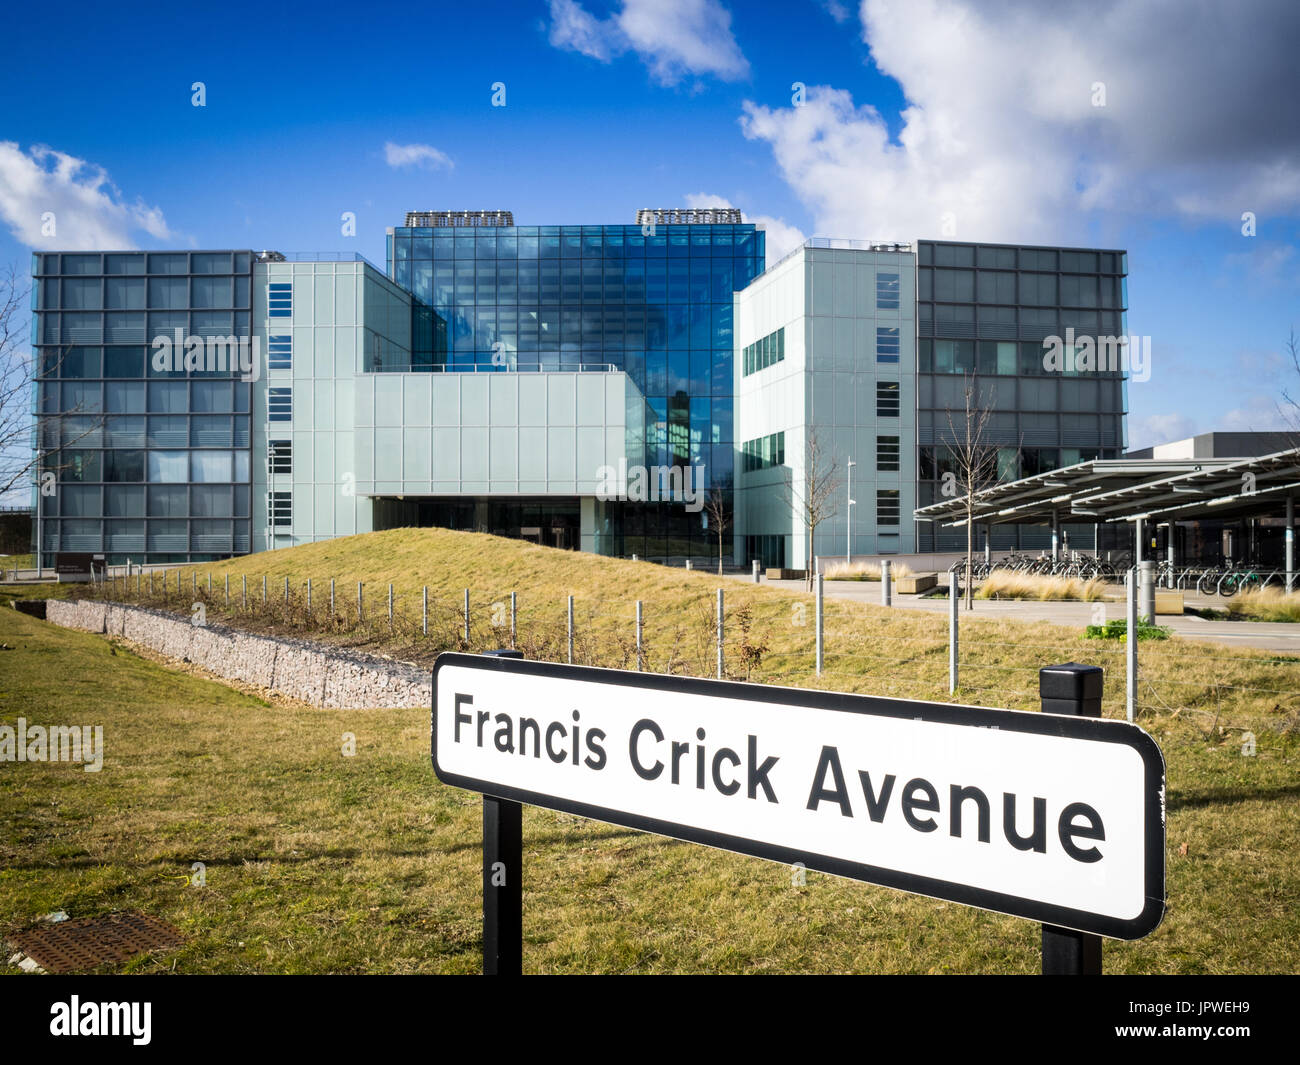 Biomedical Campus - the MRC Laboratory of Molecular Biology, in Francis Crick Avenue, Cambridge UK. - Stock Image